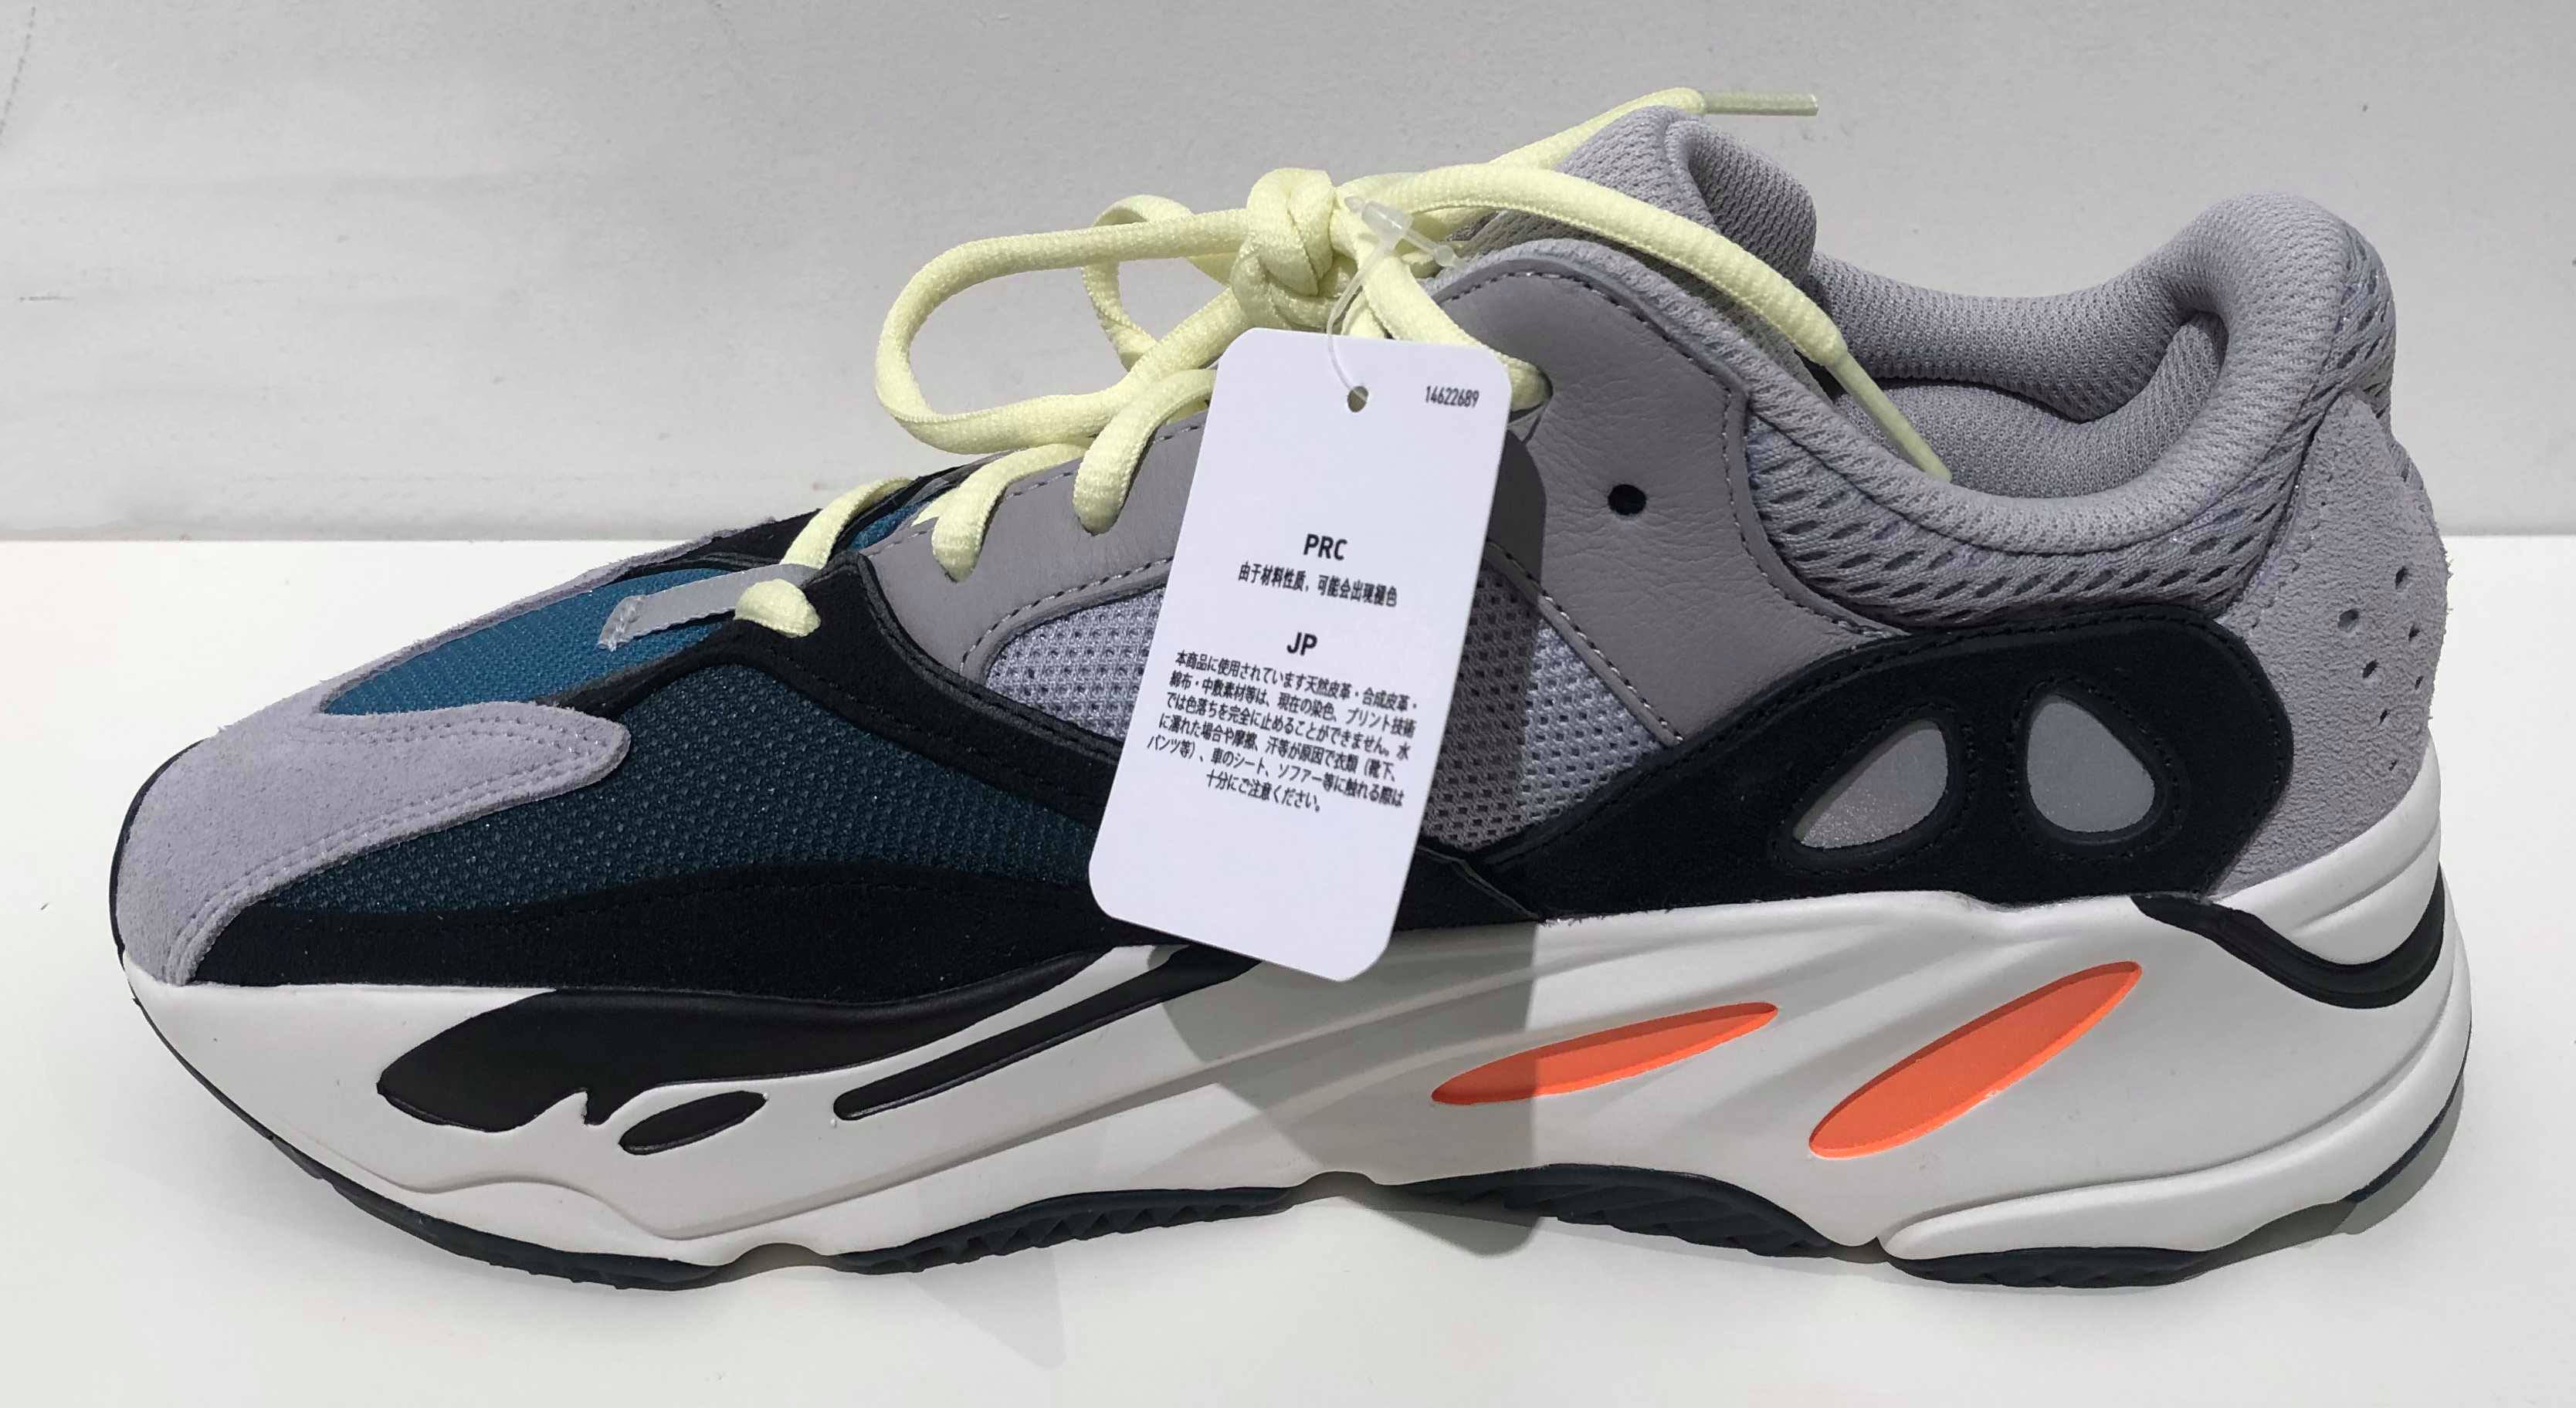 How to legit check YEEZY 700 OG WAVERUNNER - COMPARISON PICTURES